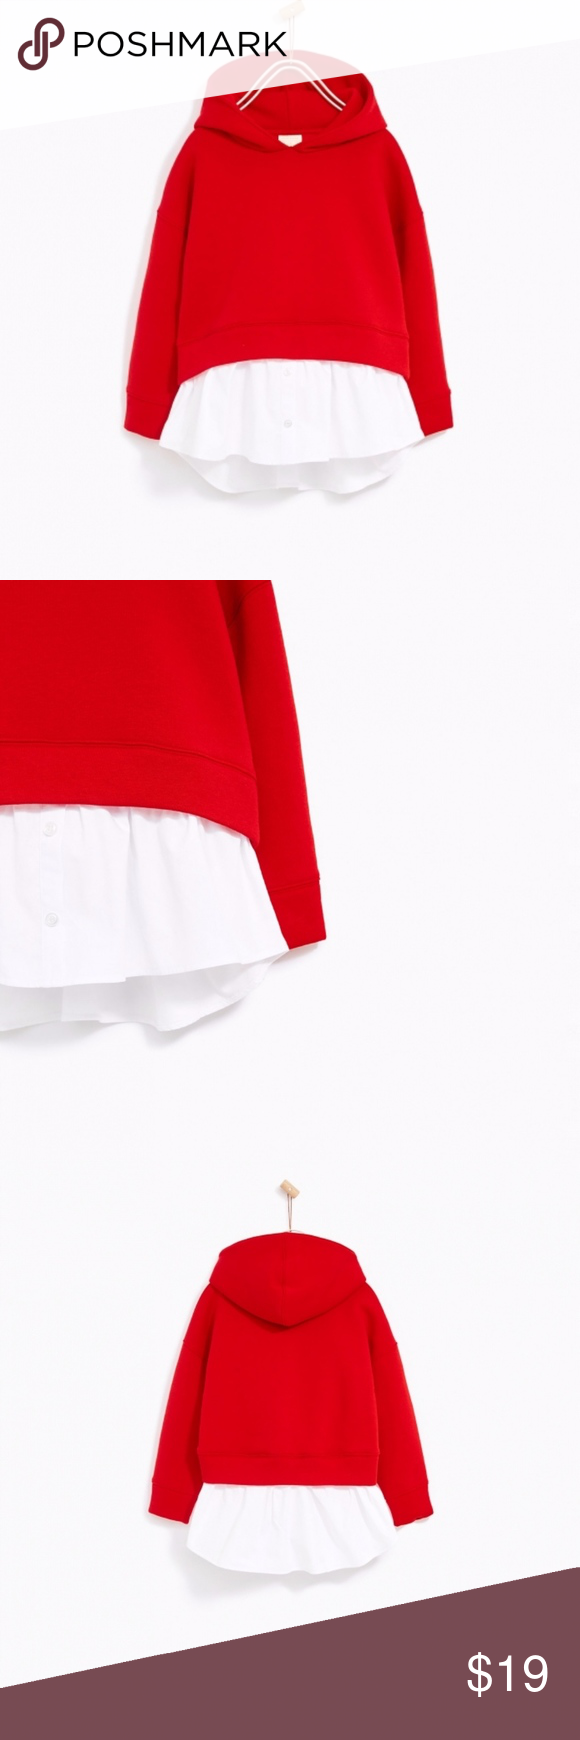 Zara girls red sweatshirt with white undershirt In great condition, with no stai... ,  #condition #Girls #Great #RED #stai #sweatshirt #undershirt #White #ZARA #zarakidsred